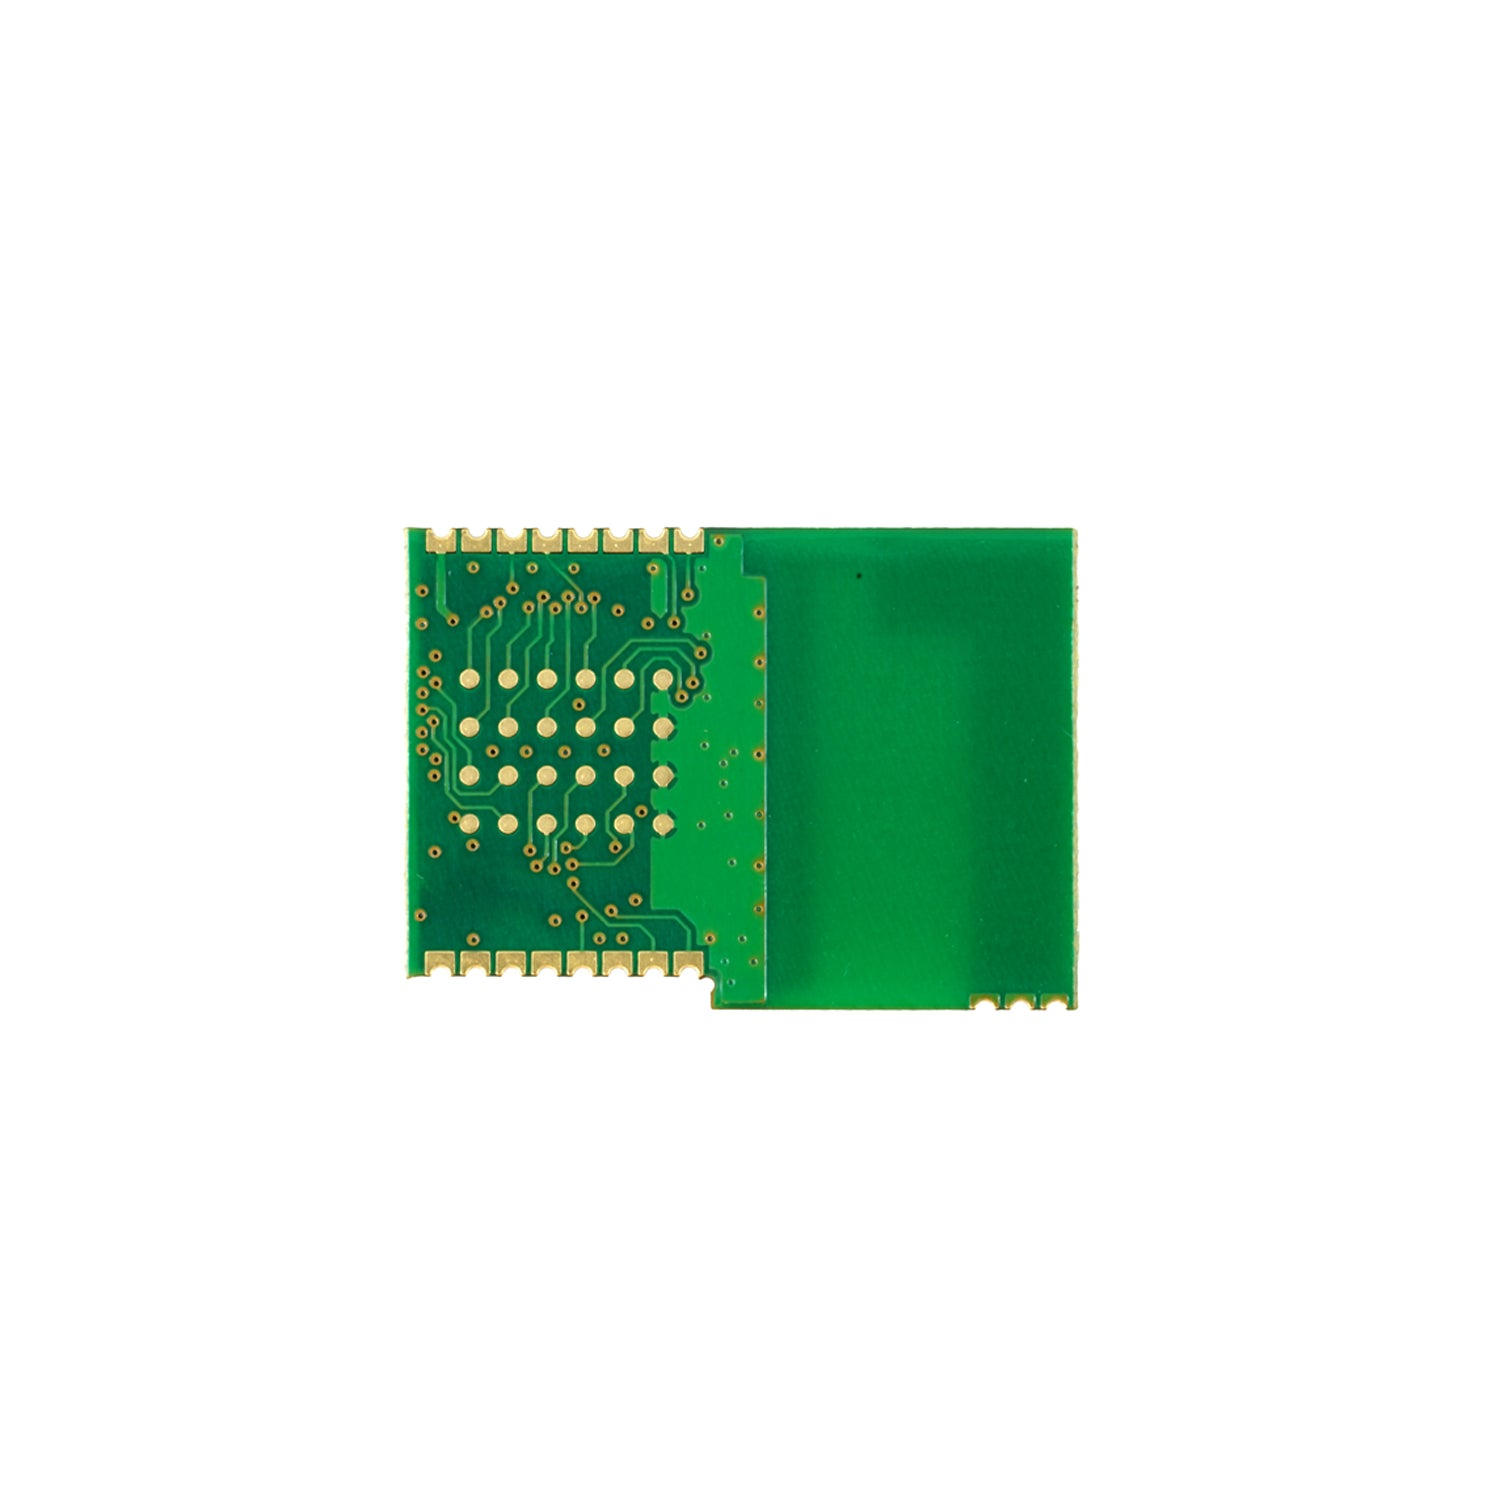 Bt832f Extended Range Bluetooth Low Energy Ble 5 Module Grid Circuit Design Good Quality Solution Provider Products 400 600